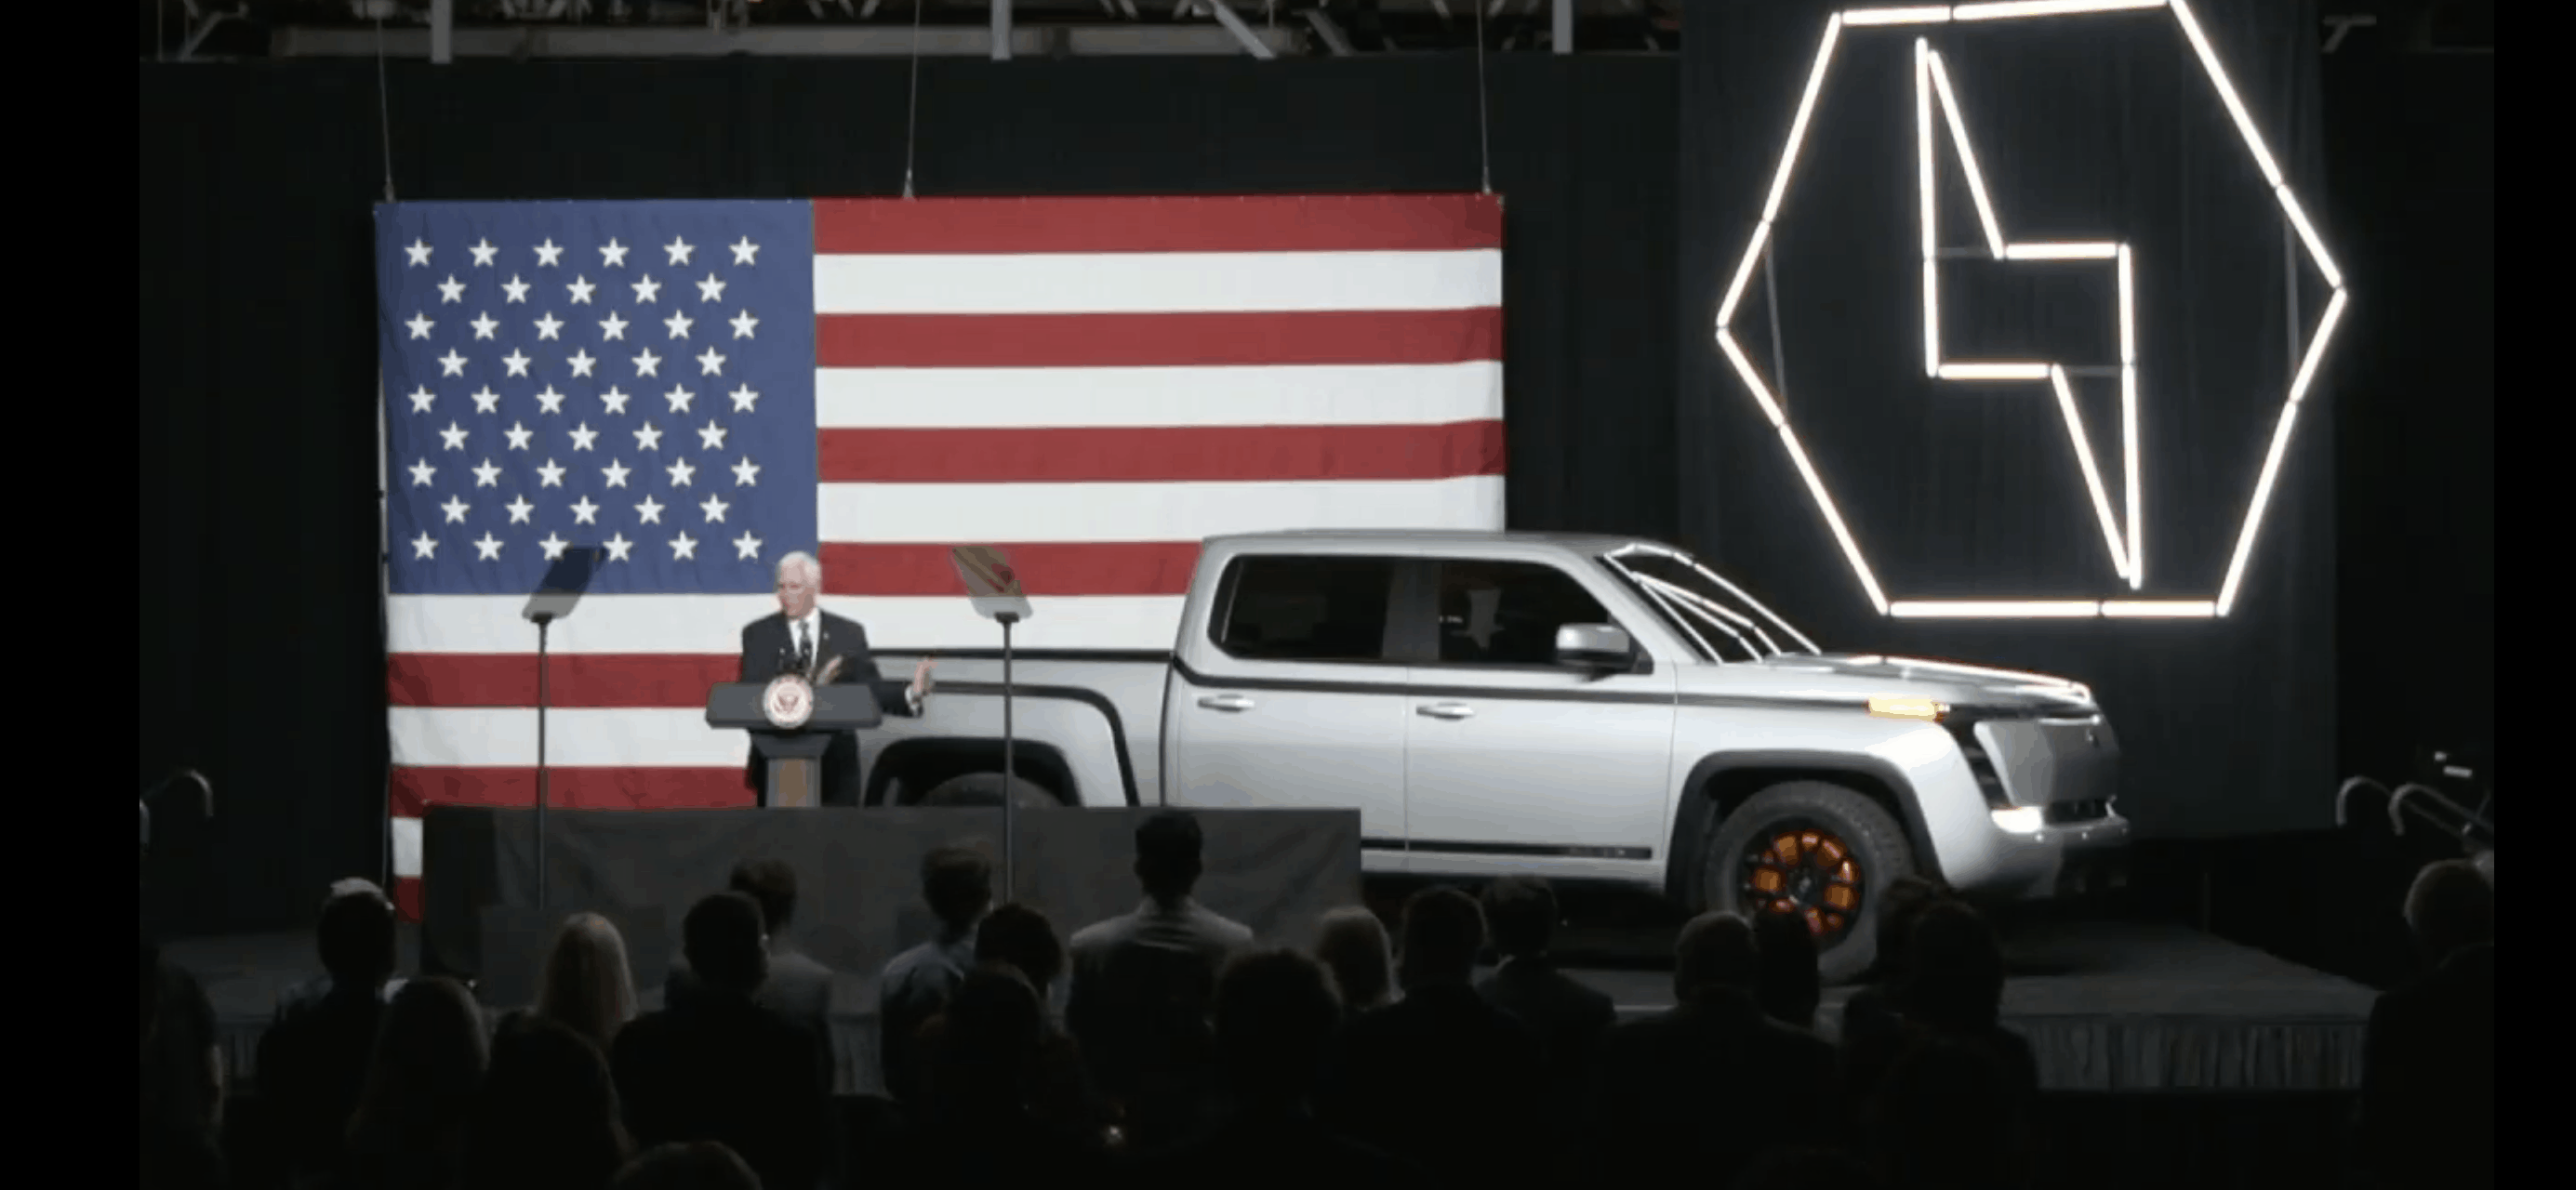 VP Pence at Endurance truck reveal